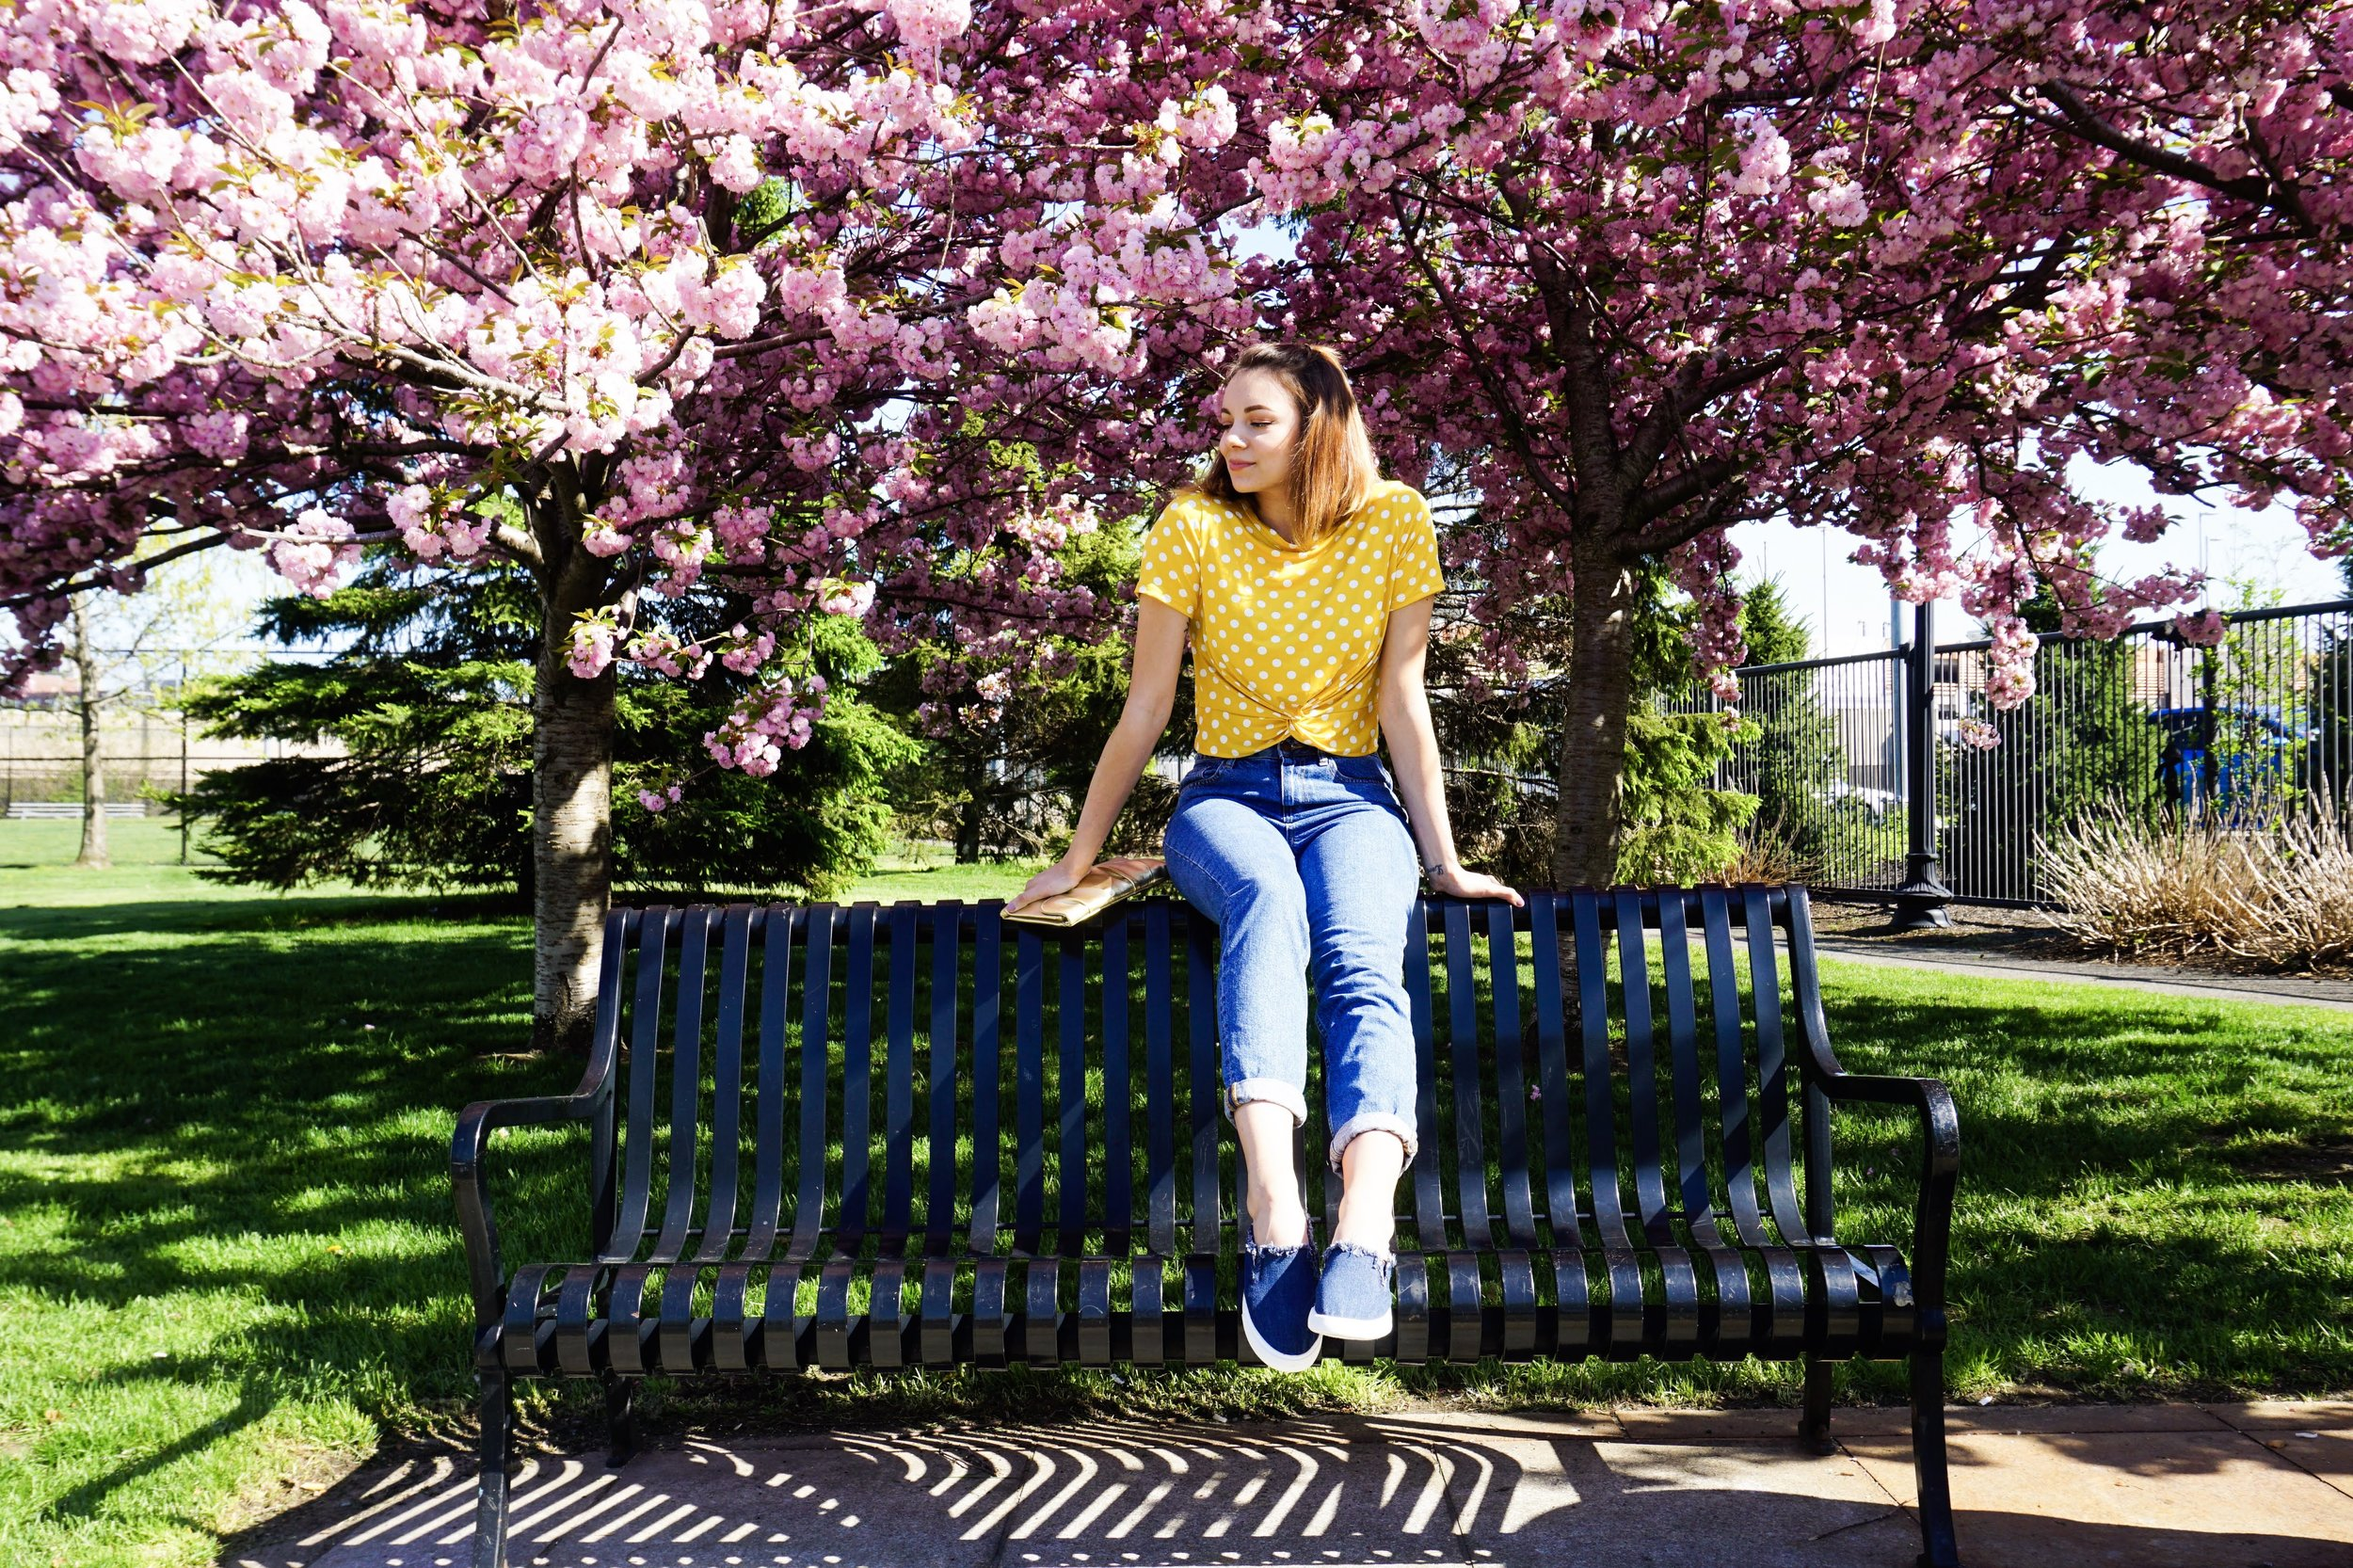 A girl is sitting on a bench in the park, wearing a yellow crop top, jeans, and denim slip ons.